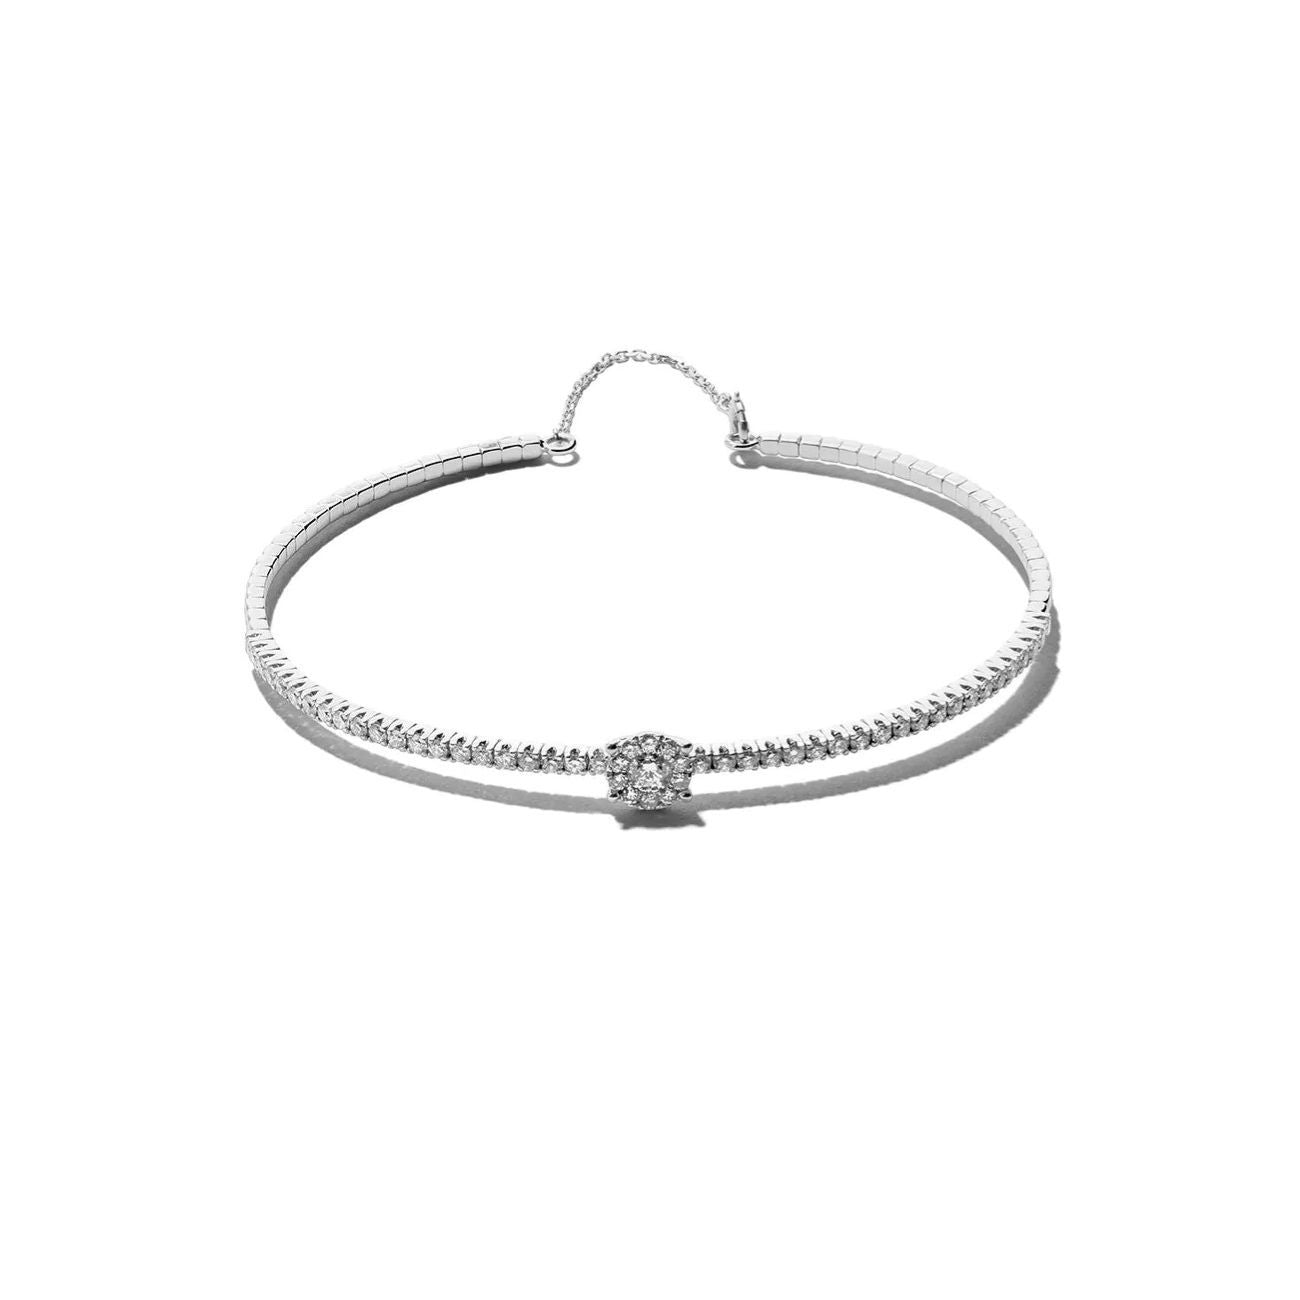 mye-halo-diamond-bangle-in-18k-white-gold